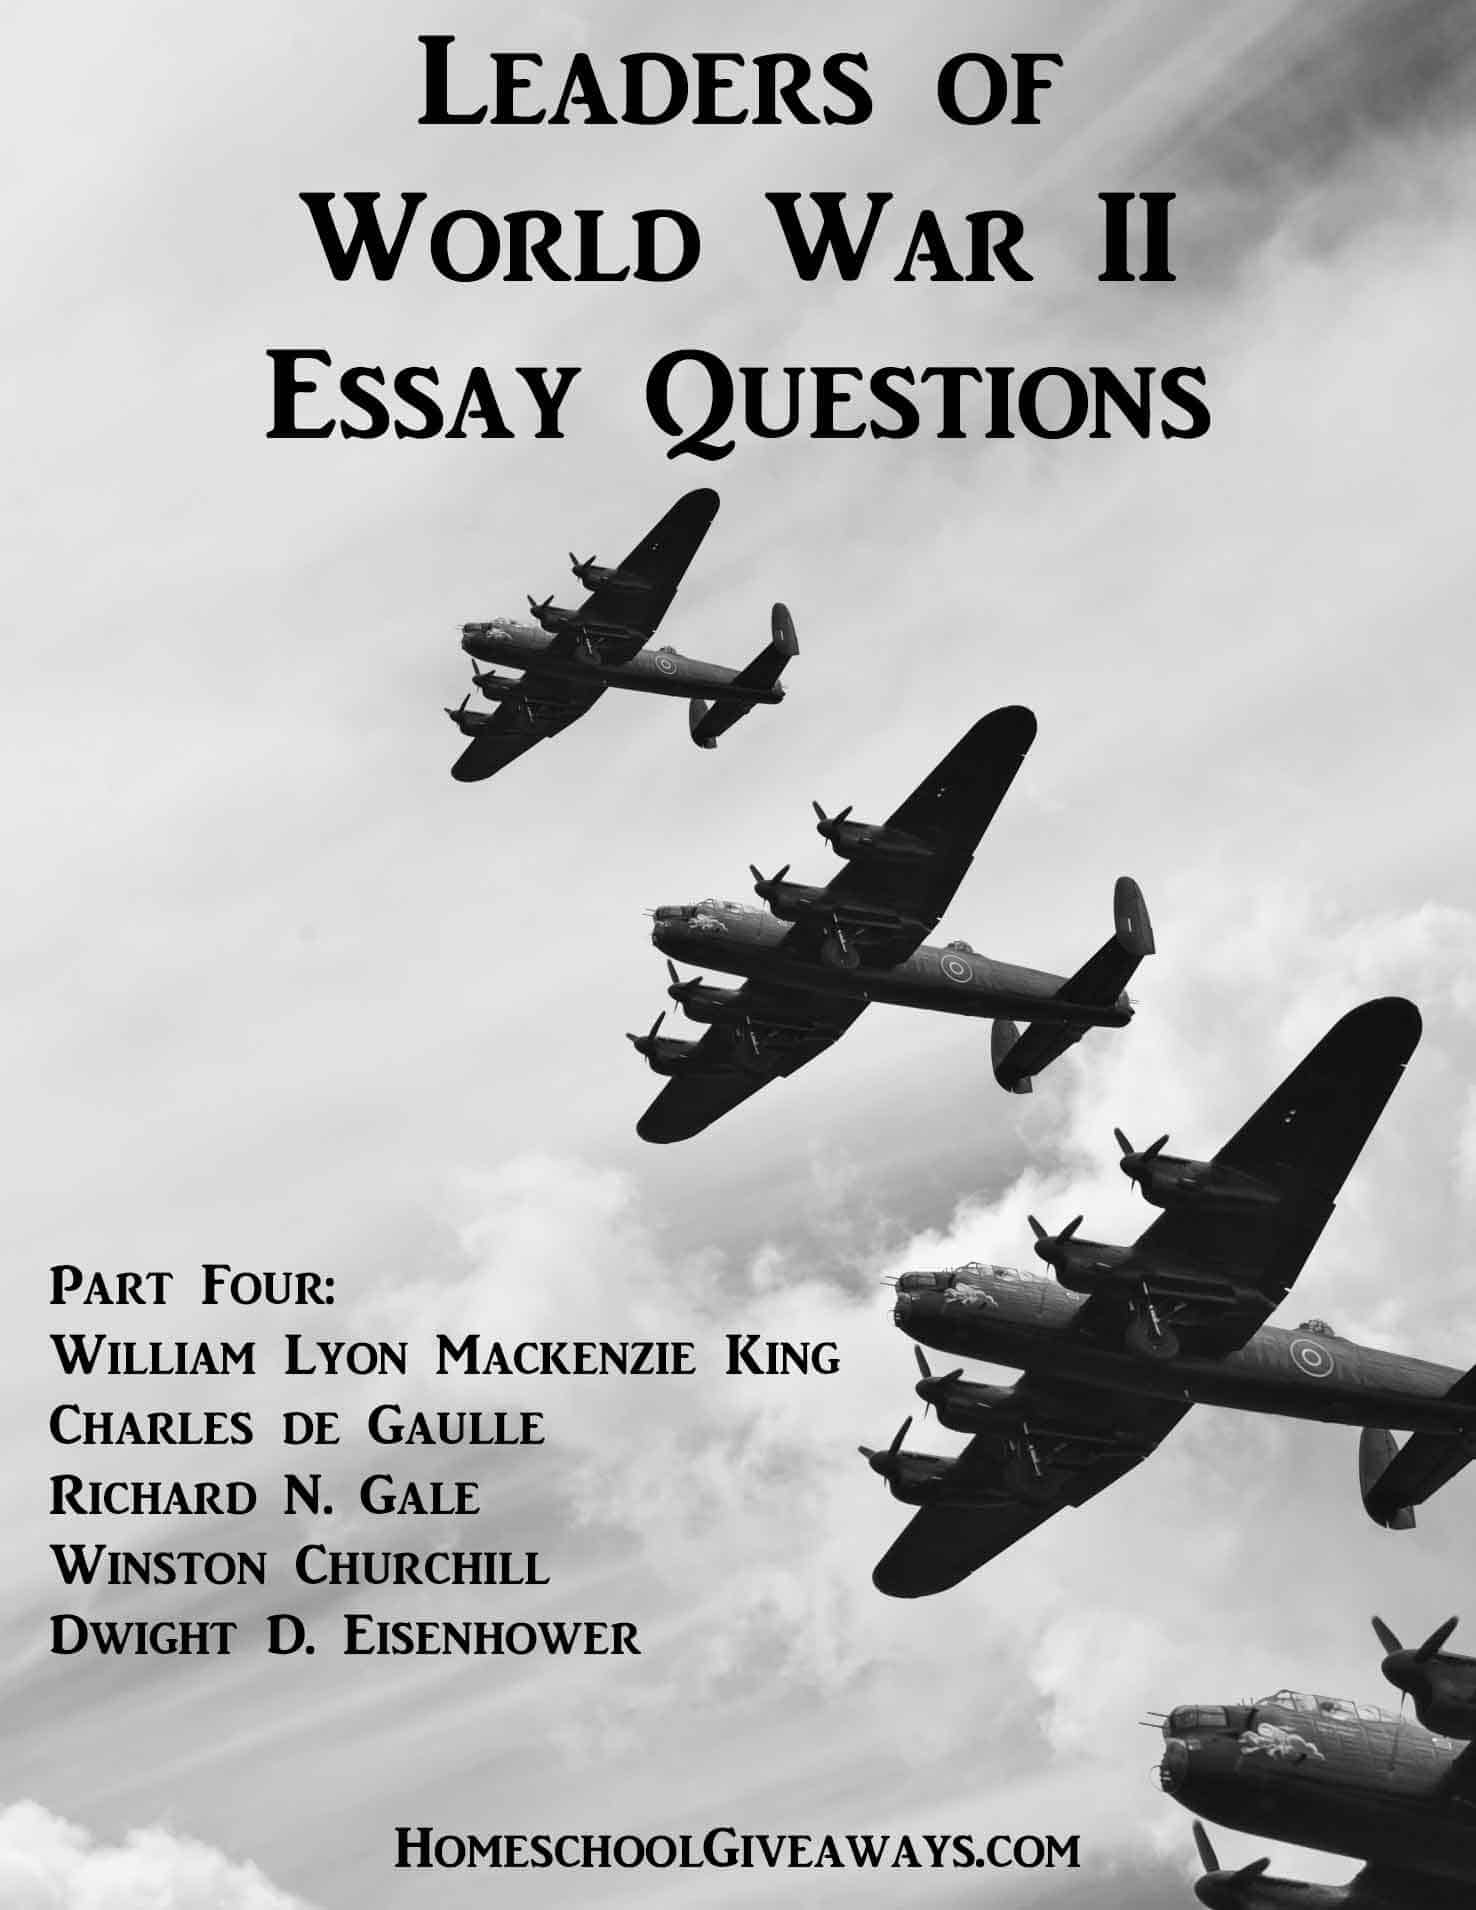 Computer Science Essays Free Leaders Of World War Ii Essay Questions Part Four  Homeschool  Giveaways Thesis Statement For Descriptive Essay also Analysis And Synthesis Essay Free Leaders Of World War Ii Essay Questions Part Four  Homeschool  Help Writing Essay Paper